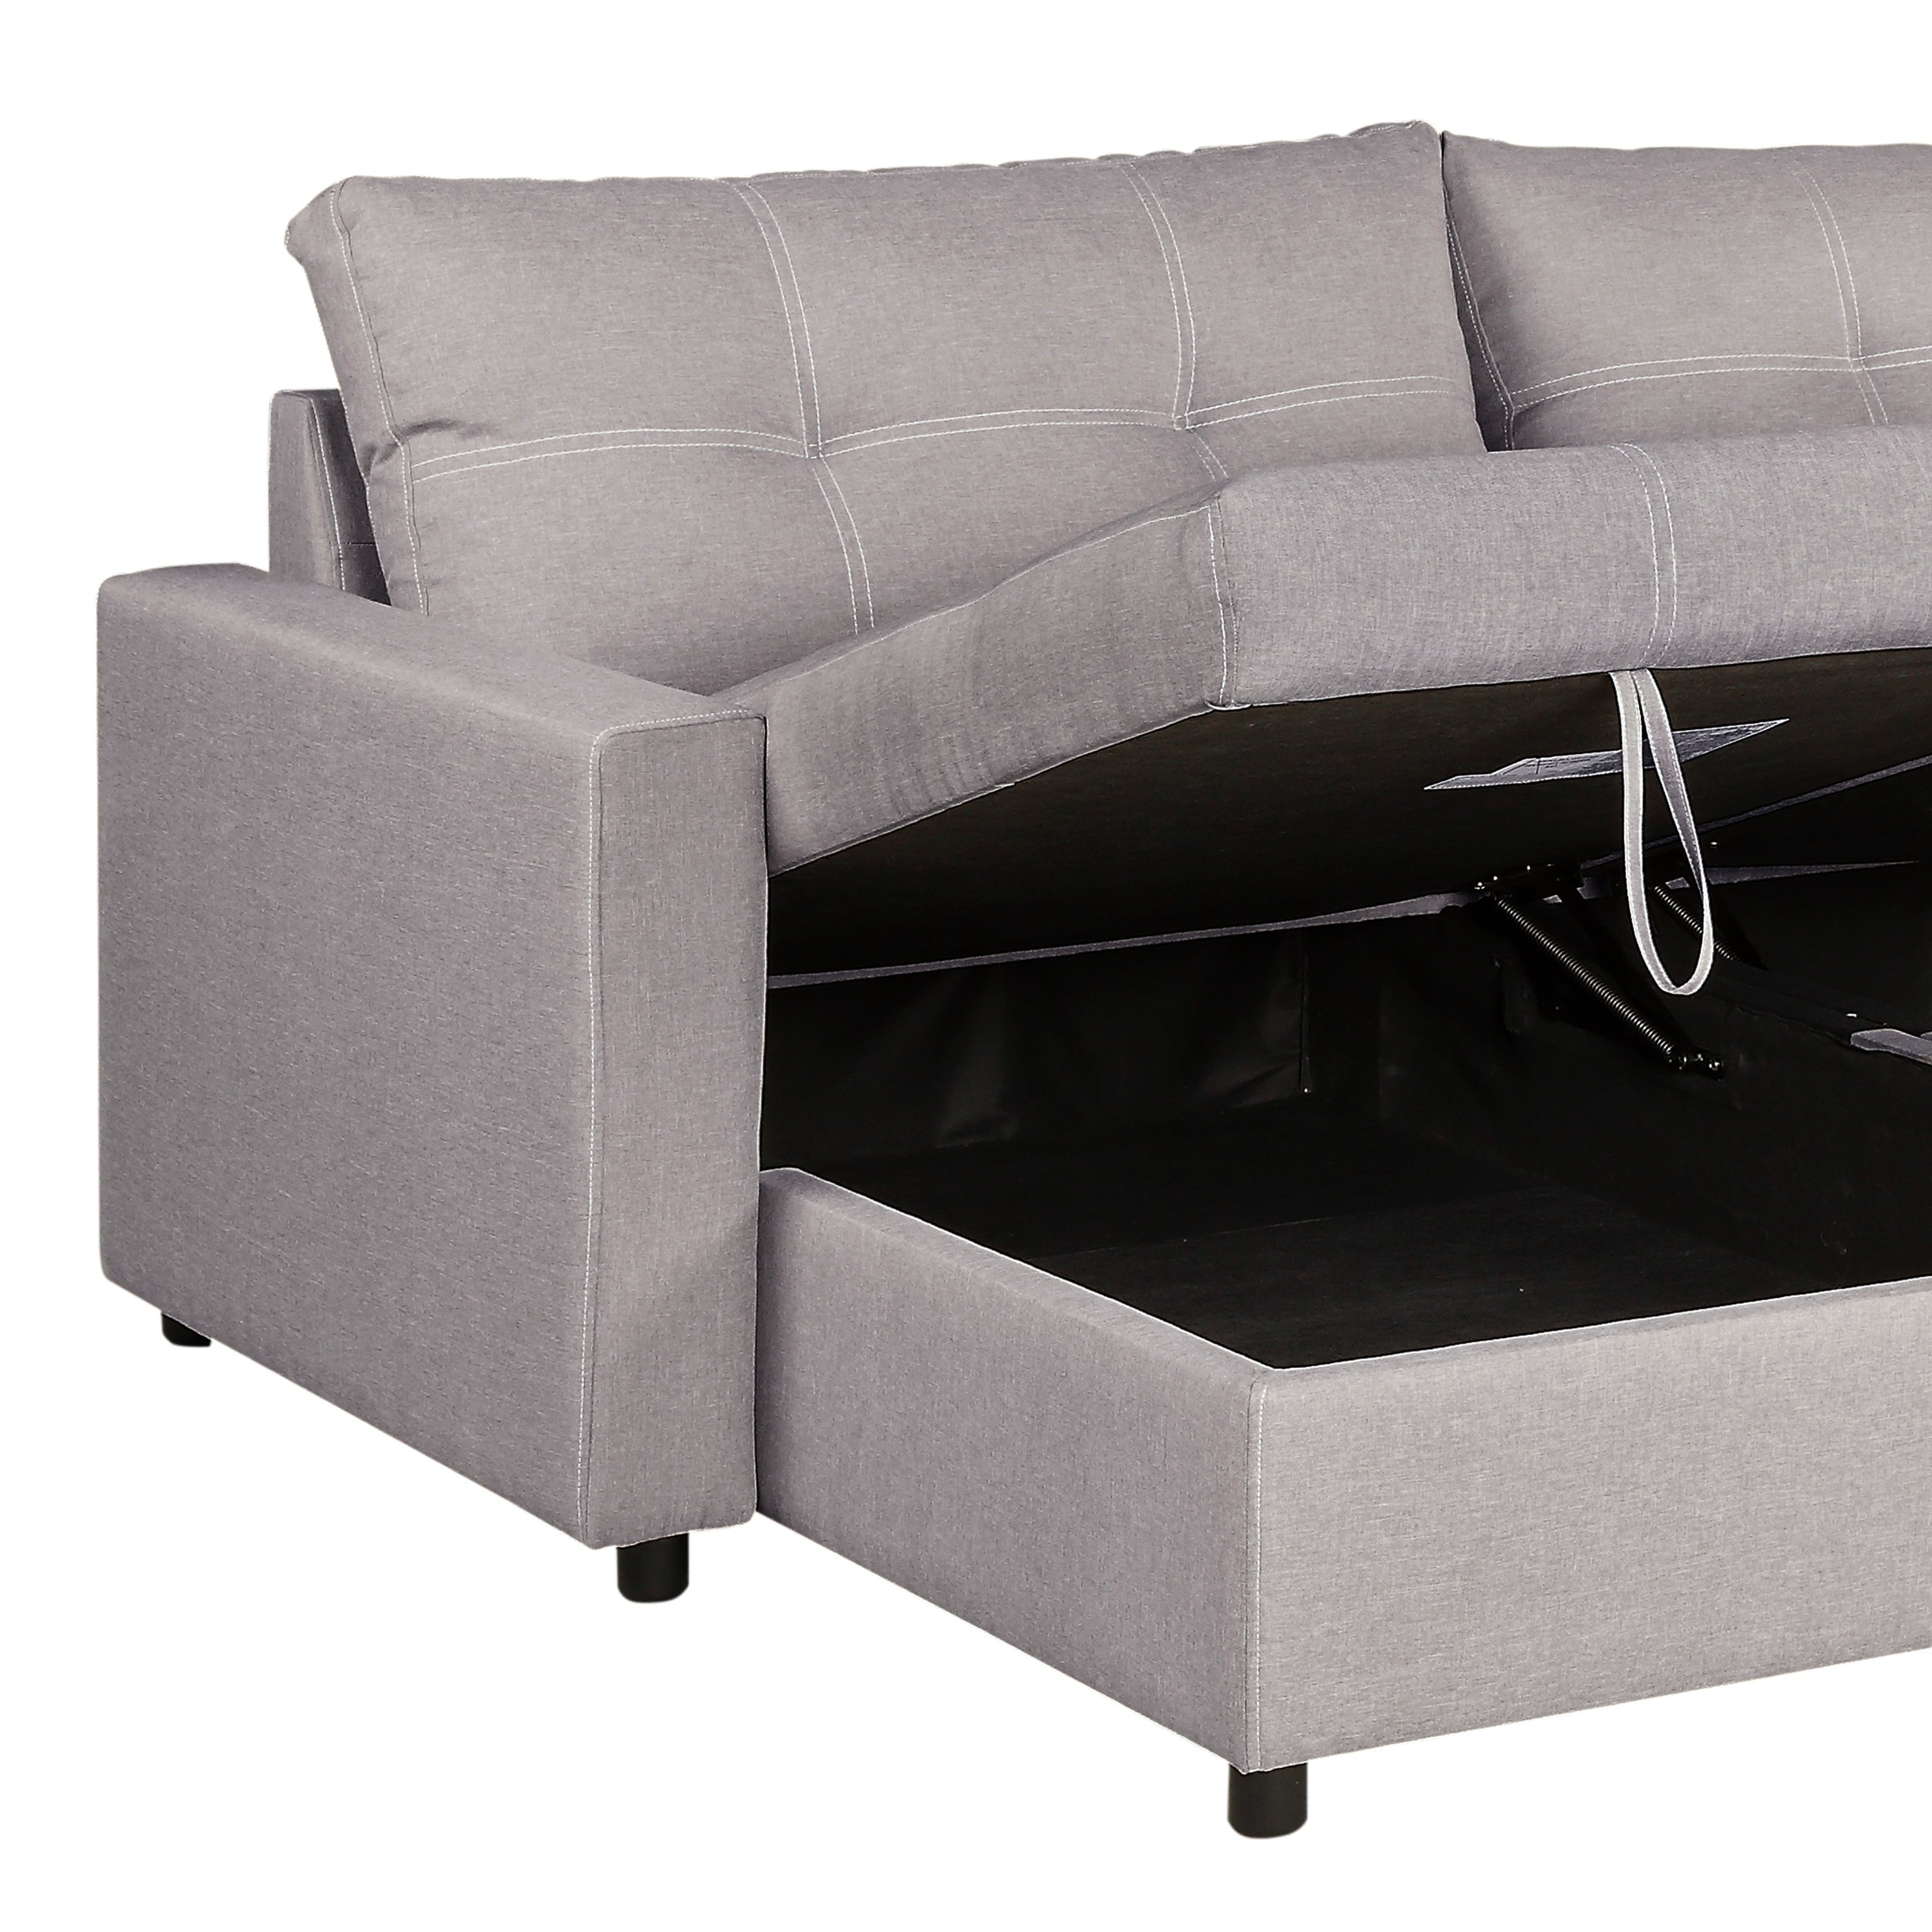 Shop Robin Polyester Sofa Chaise With 2 Storage Compartments On